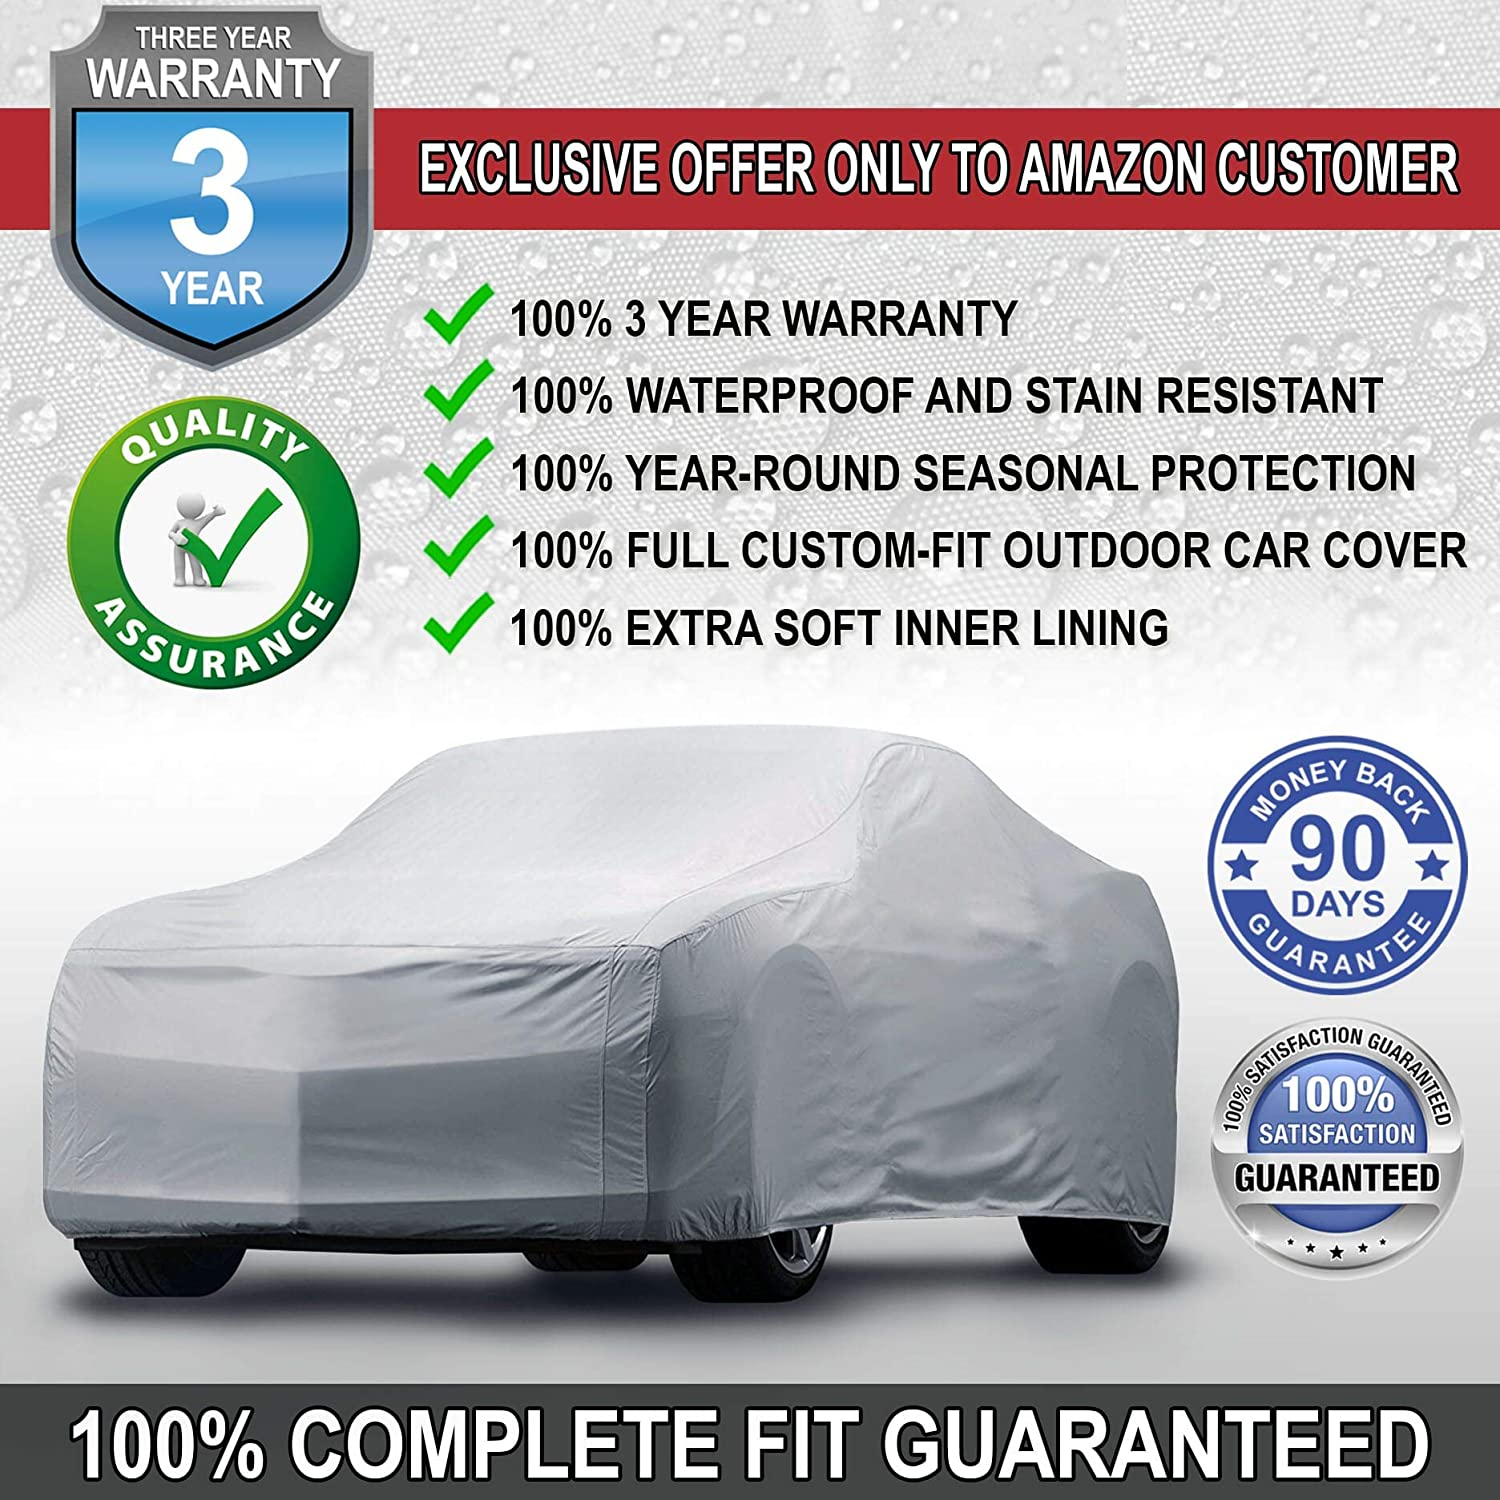 iCarCover {3-Year Full Warranty} All-Weather Waterproof Snow UV Heat Protection Dust Scratch Resistant Windproof Weatherproof Breathable Automobile Indoor Outdoor Auto Car Cover for Cars Up to 223